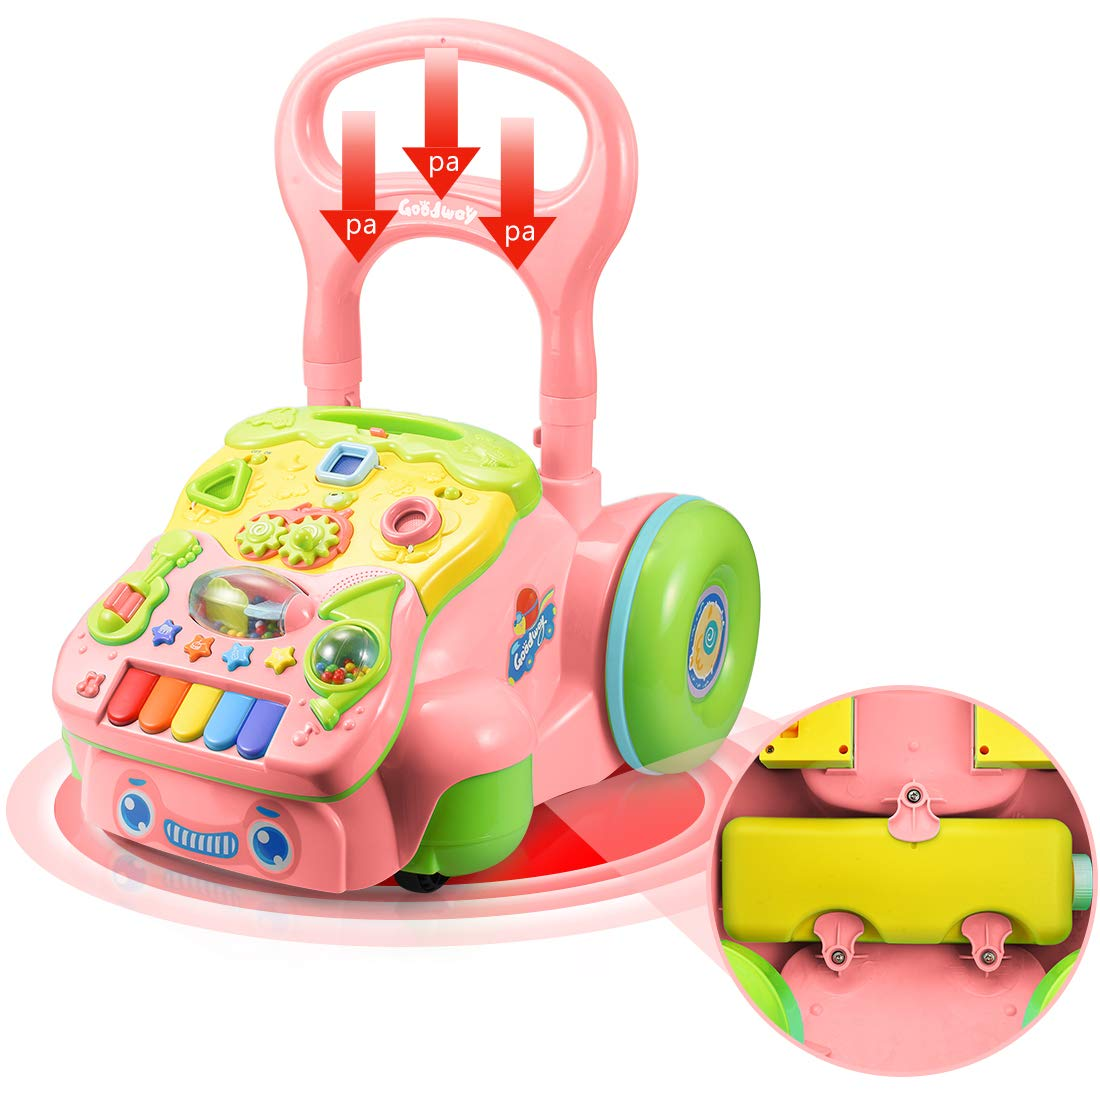 Forstart Sit-to-Stand Learning Walker Push and Pull Activity Center Music and Light Adjustable Height Early Development Toys for 6 Months to 3 Years Old